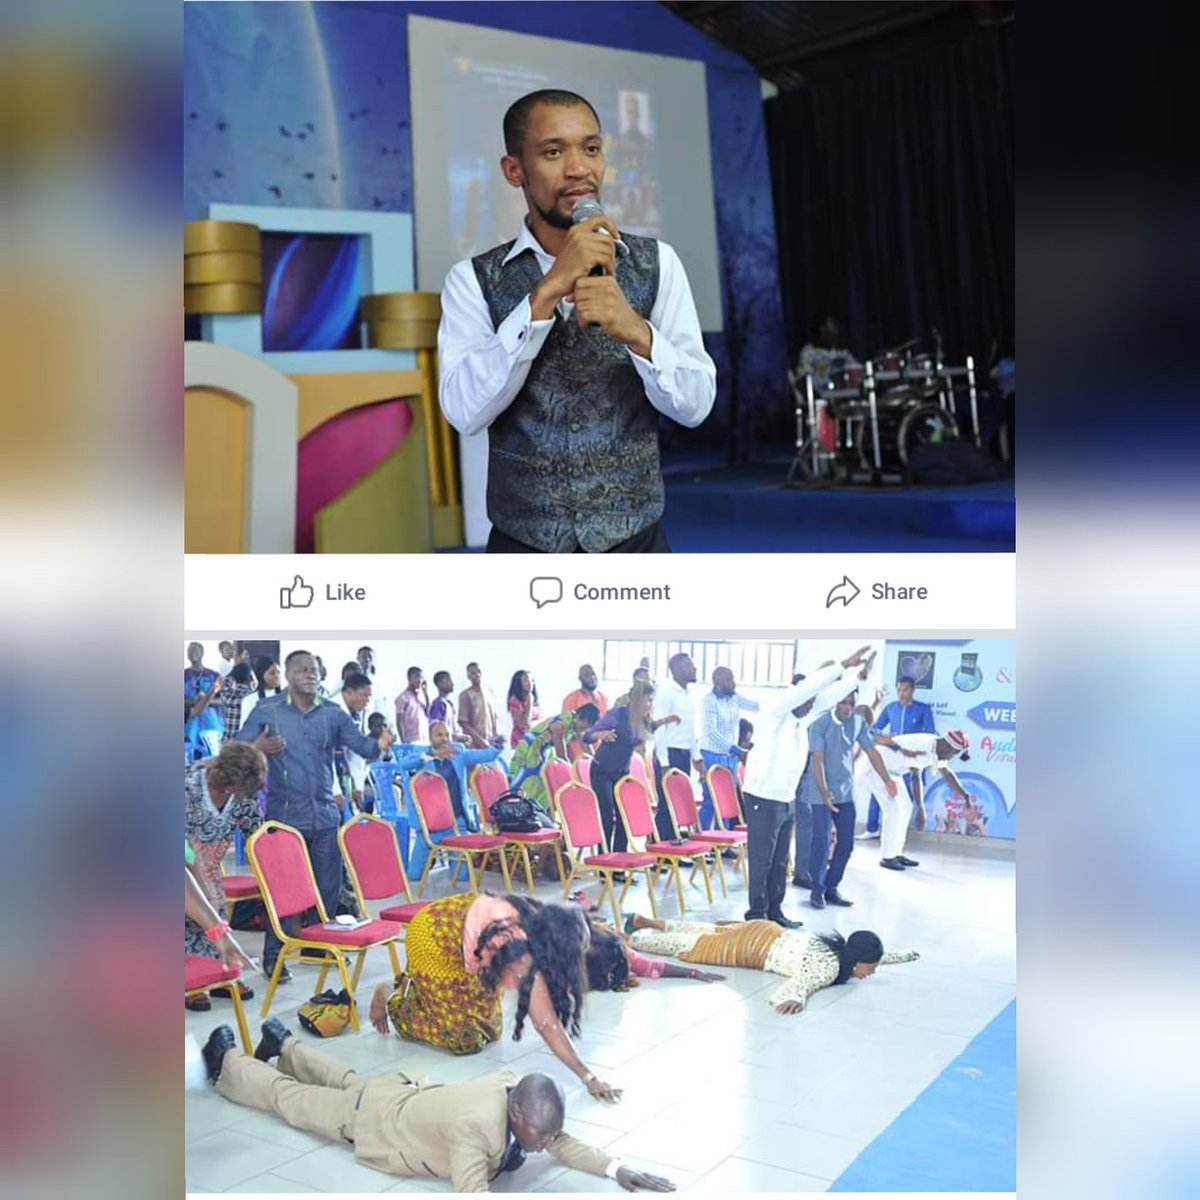 On Sunday... Christ Embassy Oyigbo never remained the same again! The anointing was so tangible! Thank you dearly Pastor Oliver for having us @_israelclement #holyspirit <br>http://pic.twitter.com/xsC3P5BPSe